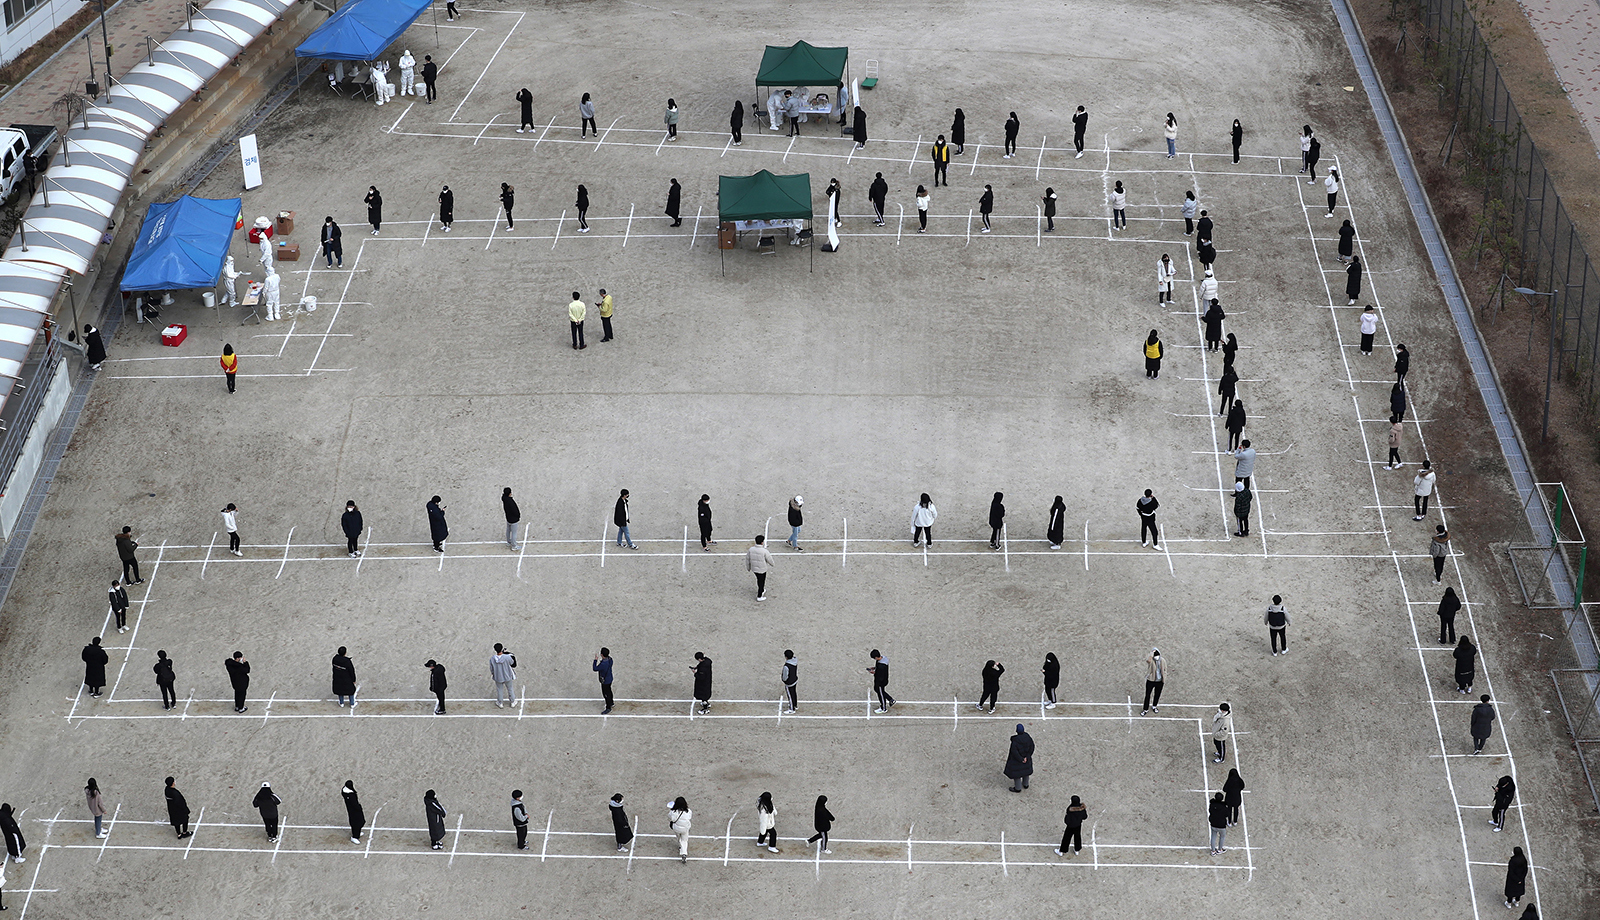 High school students and staff wait in line to take coronavirus tests at a makeshift clinic set up on a playground of a school in Sejong, South Korea, on Friday, Nov. 27.